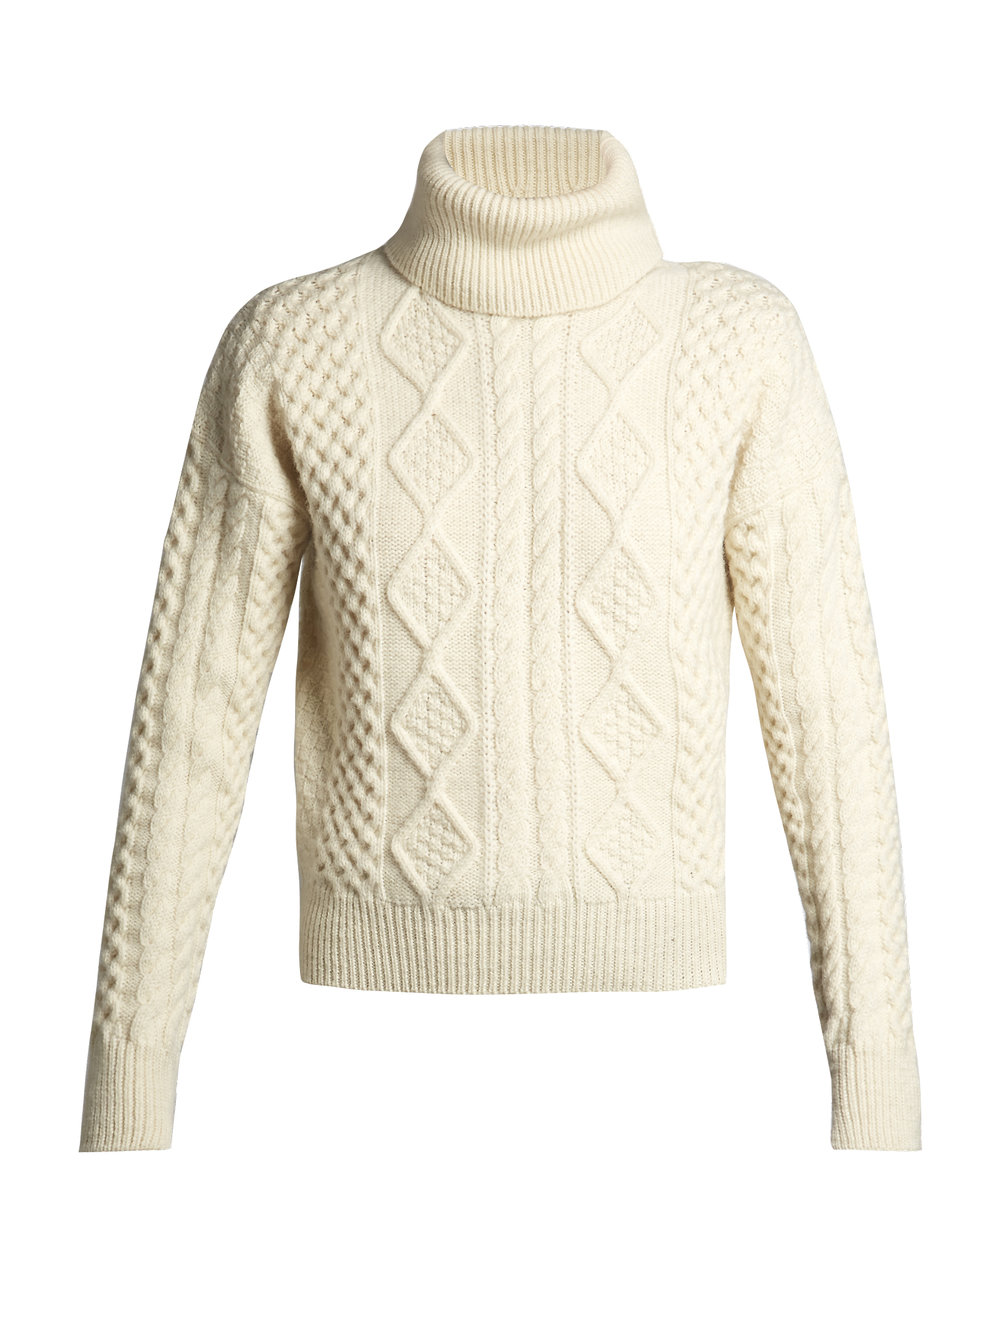 ivory cable knit - Saint Laurent / for less